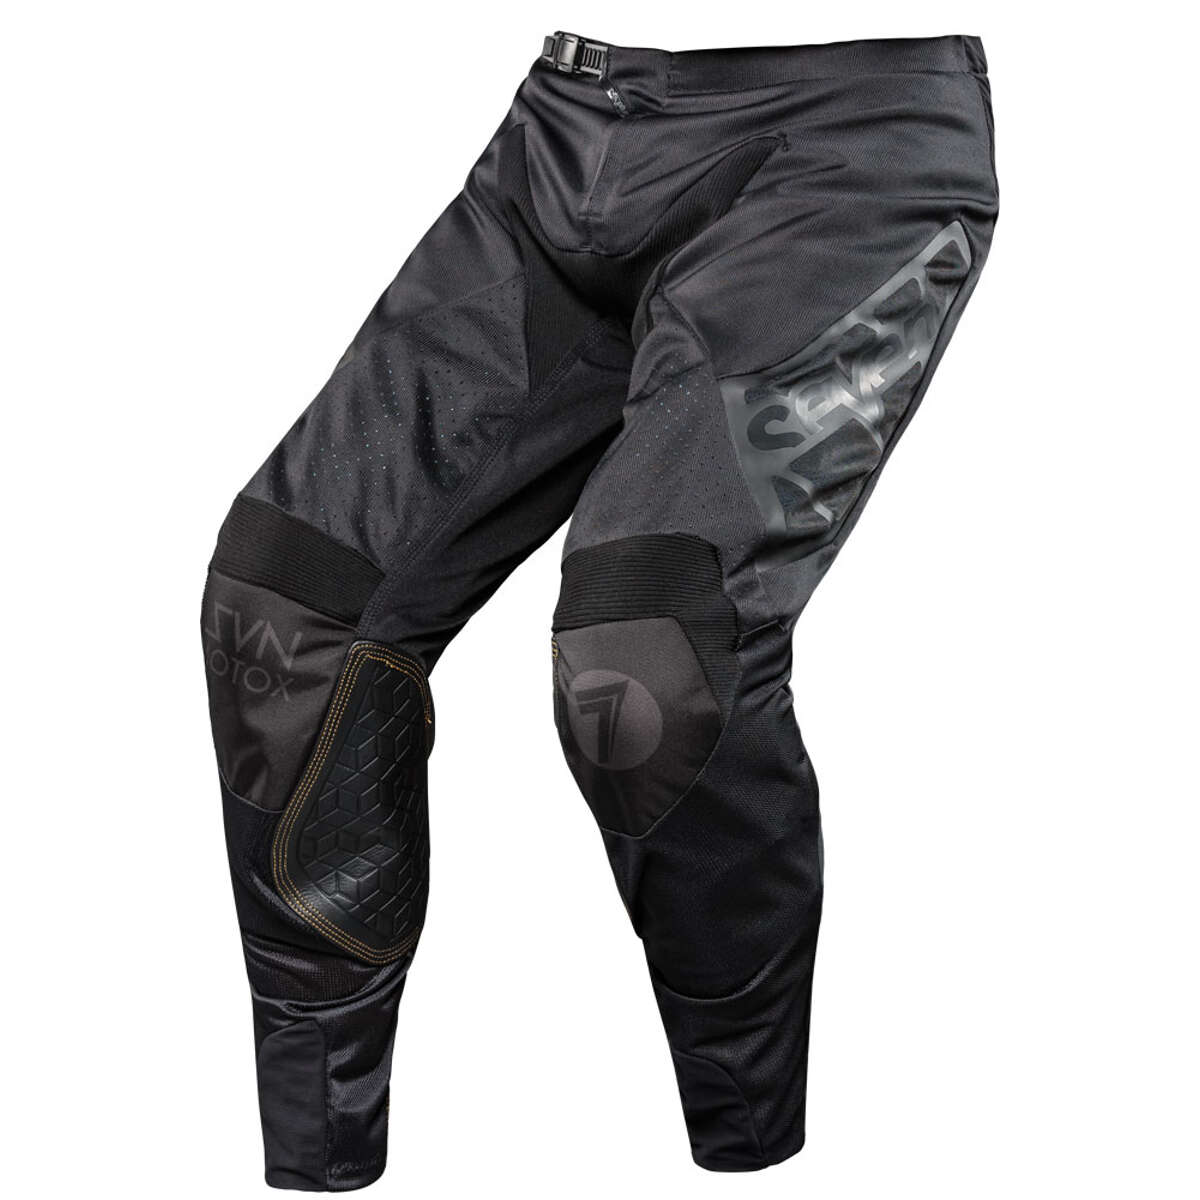 2330026-001 Seven MX 18.2 rival volume black motocross pant hose broek pantalon